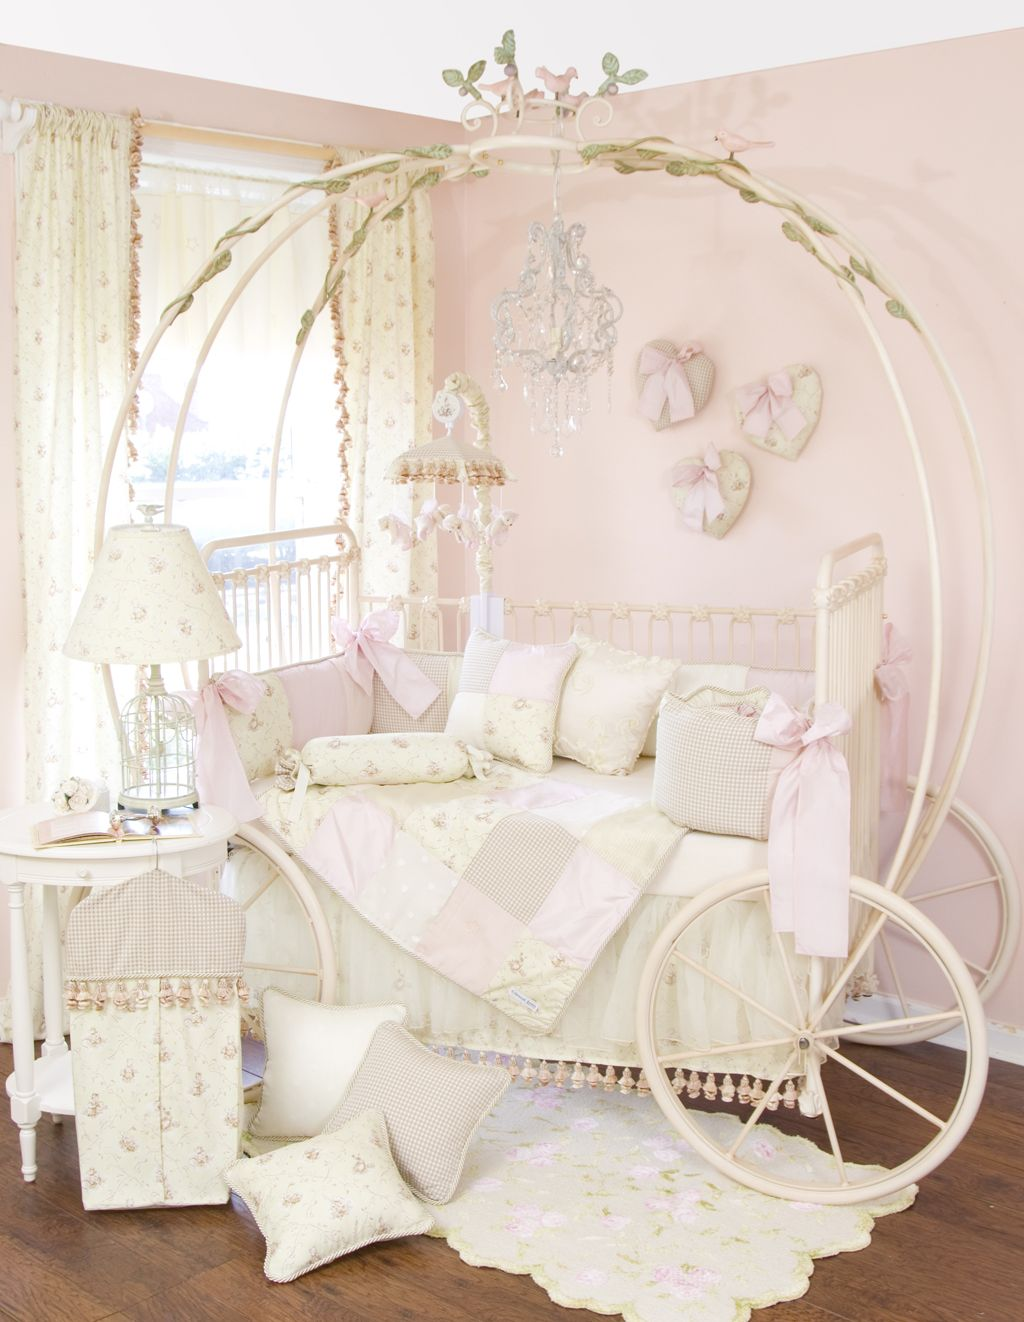 Cinderella bed!! If I ever have a little girl she will